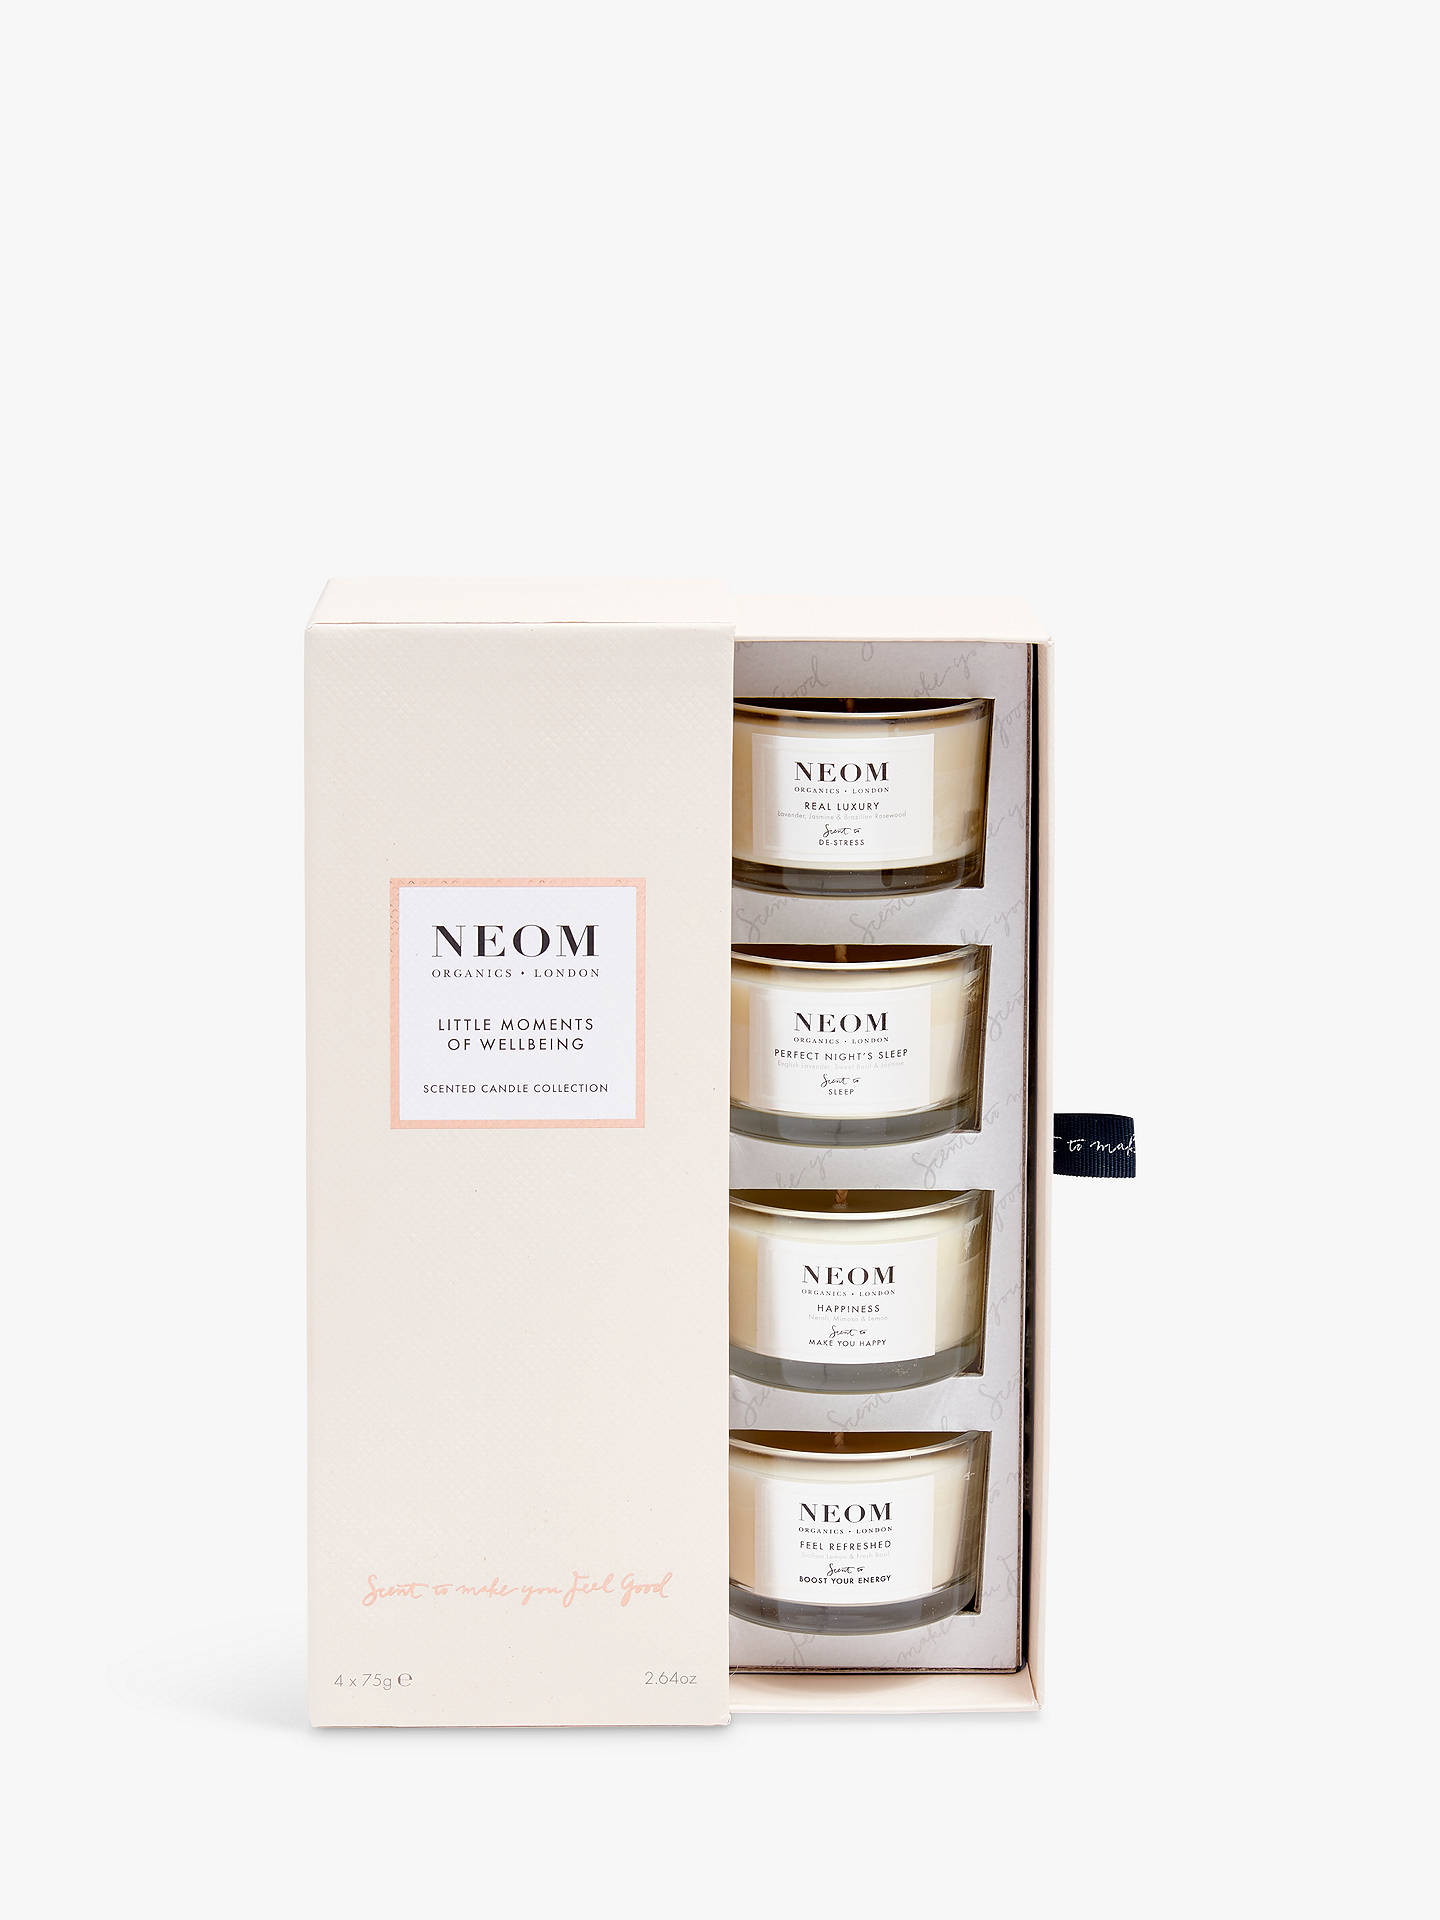 Neom Organics London Little Moments Gift Set At John Lewis Partners